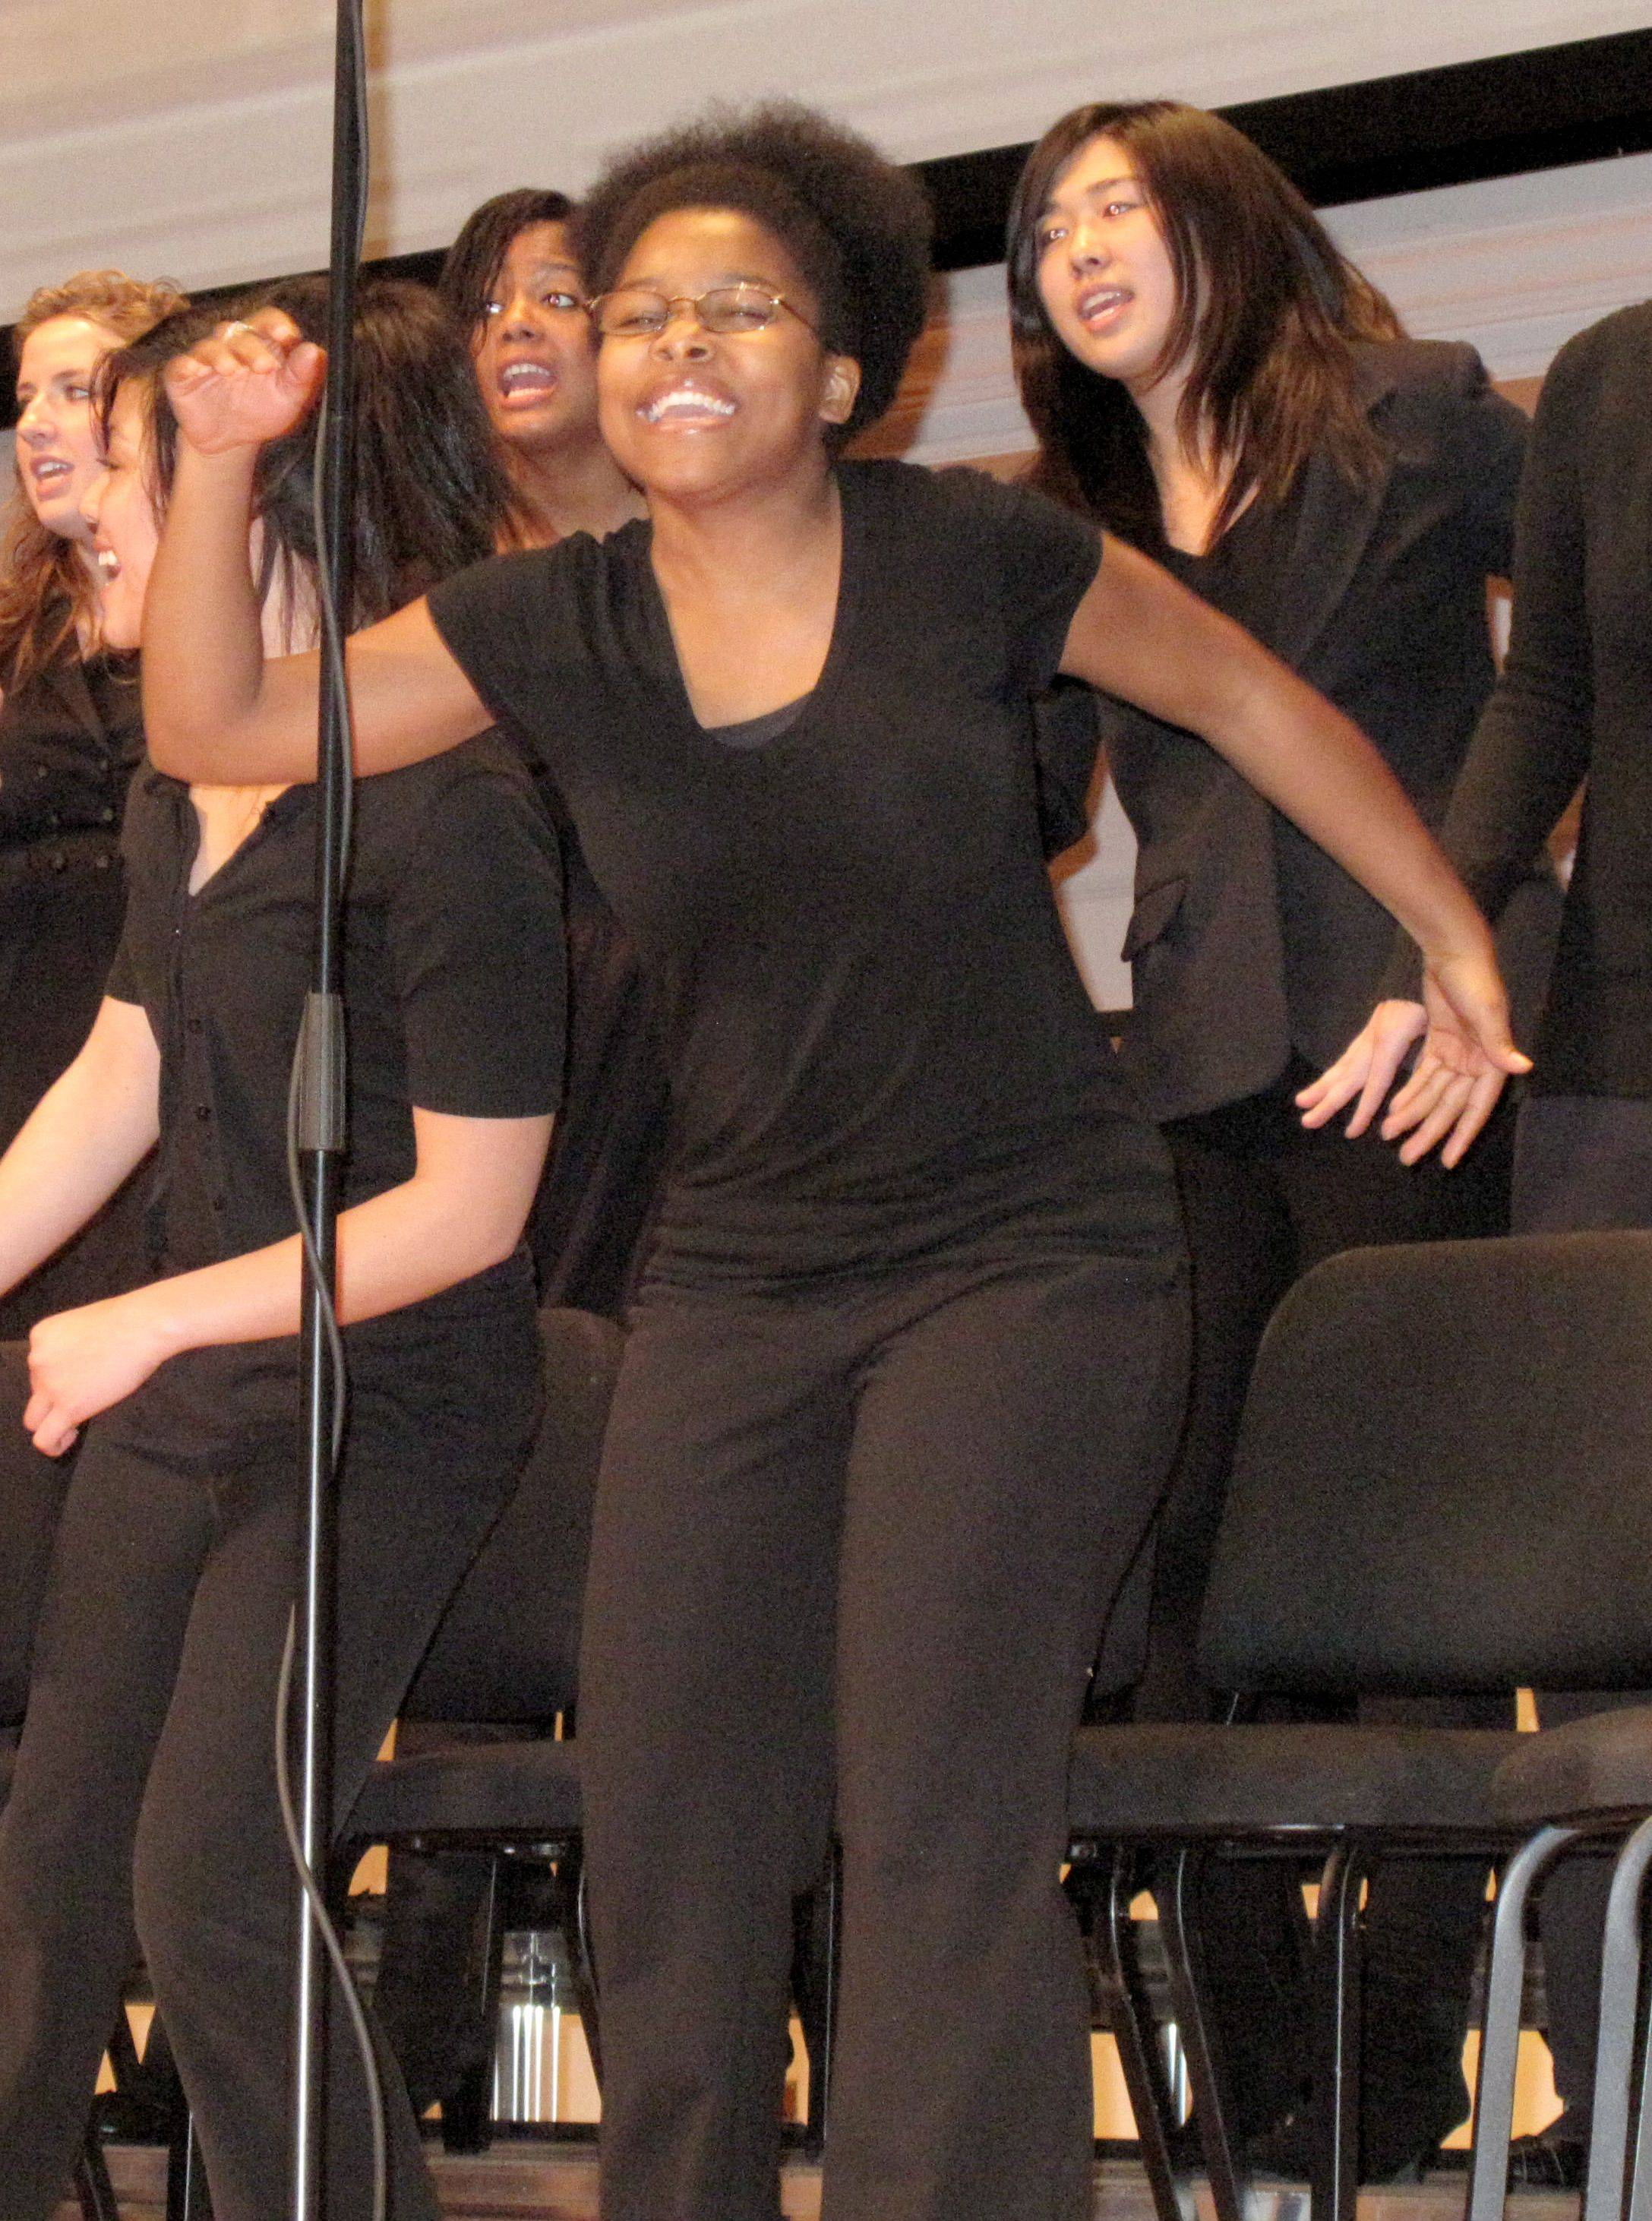 Wheaton College senior Tiffany Egler gets into her performance as part of the Wheaton College Gospel Choir on Monday, Jan. 17.